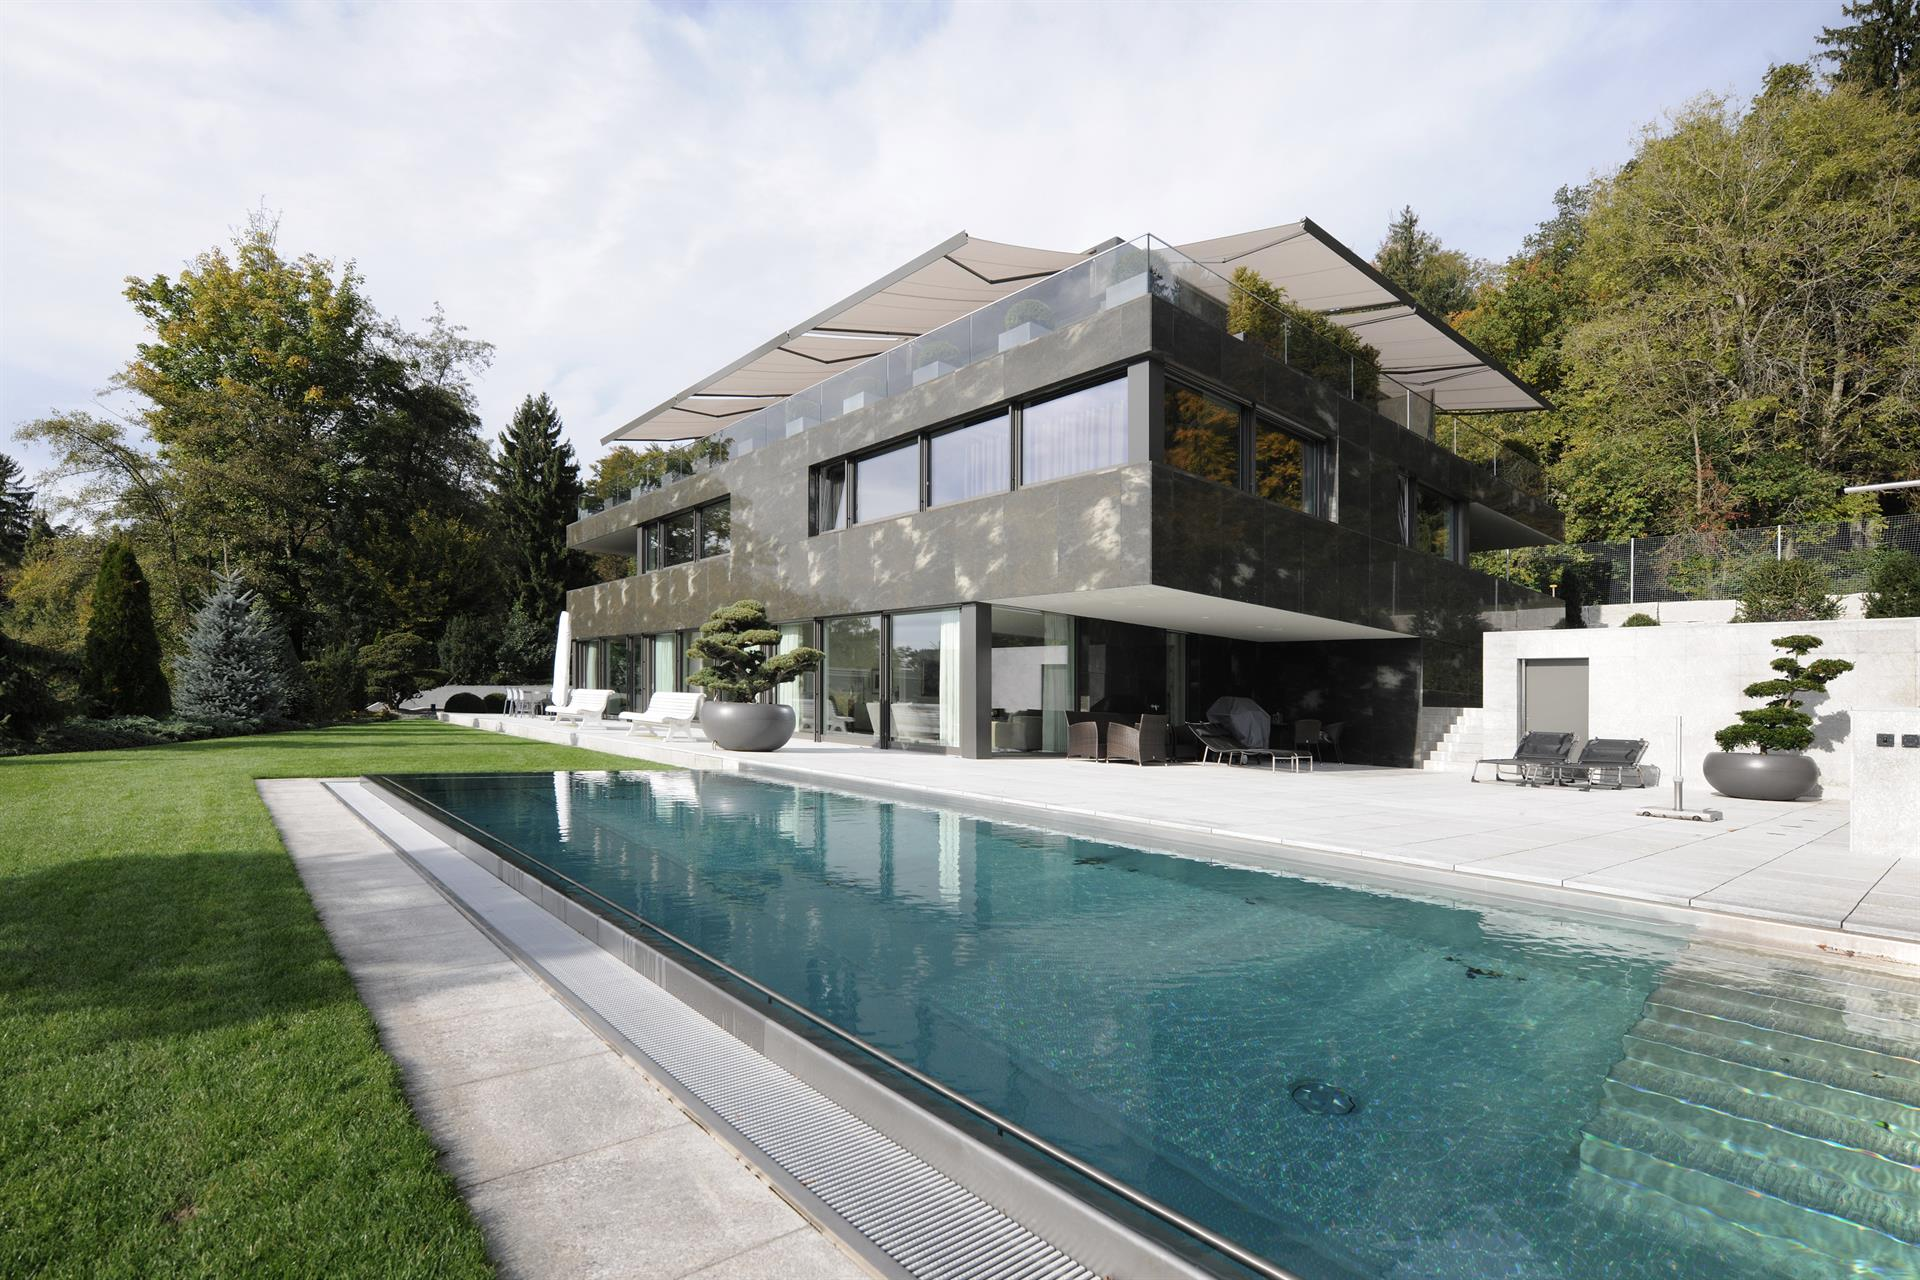 Superior Single Family Home For Sale At Spacious Living With Highest Privacy  Kusnacht, Zurich,8700